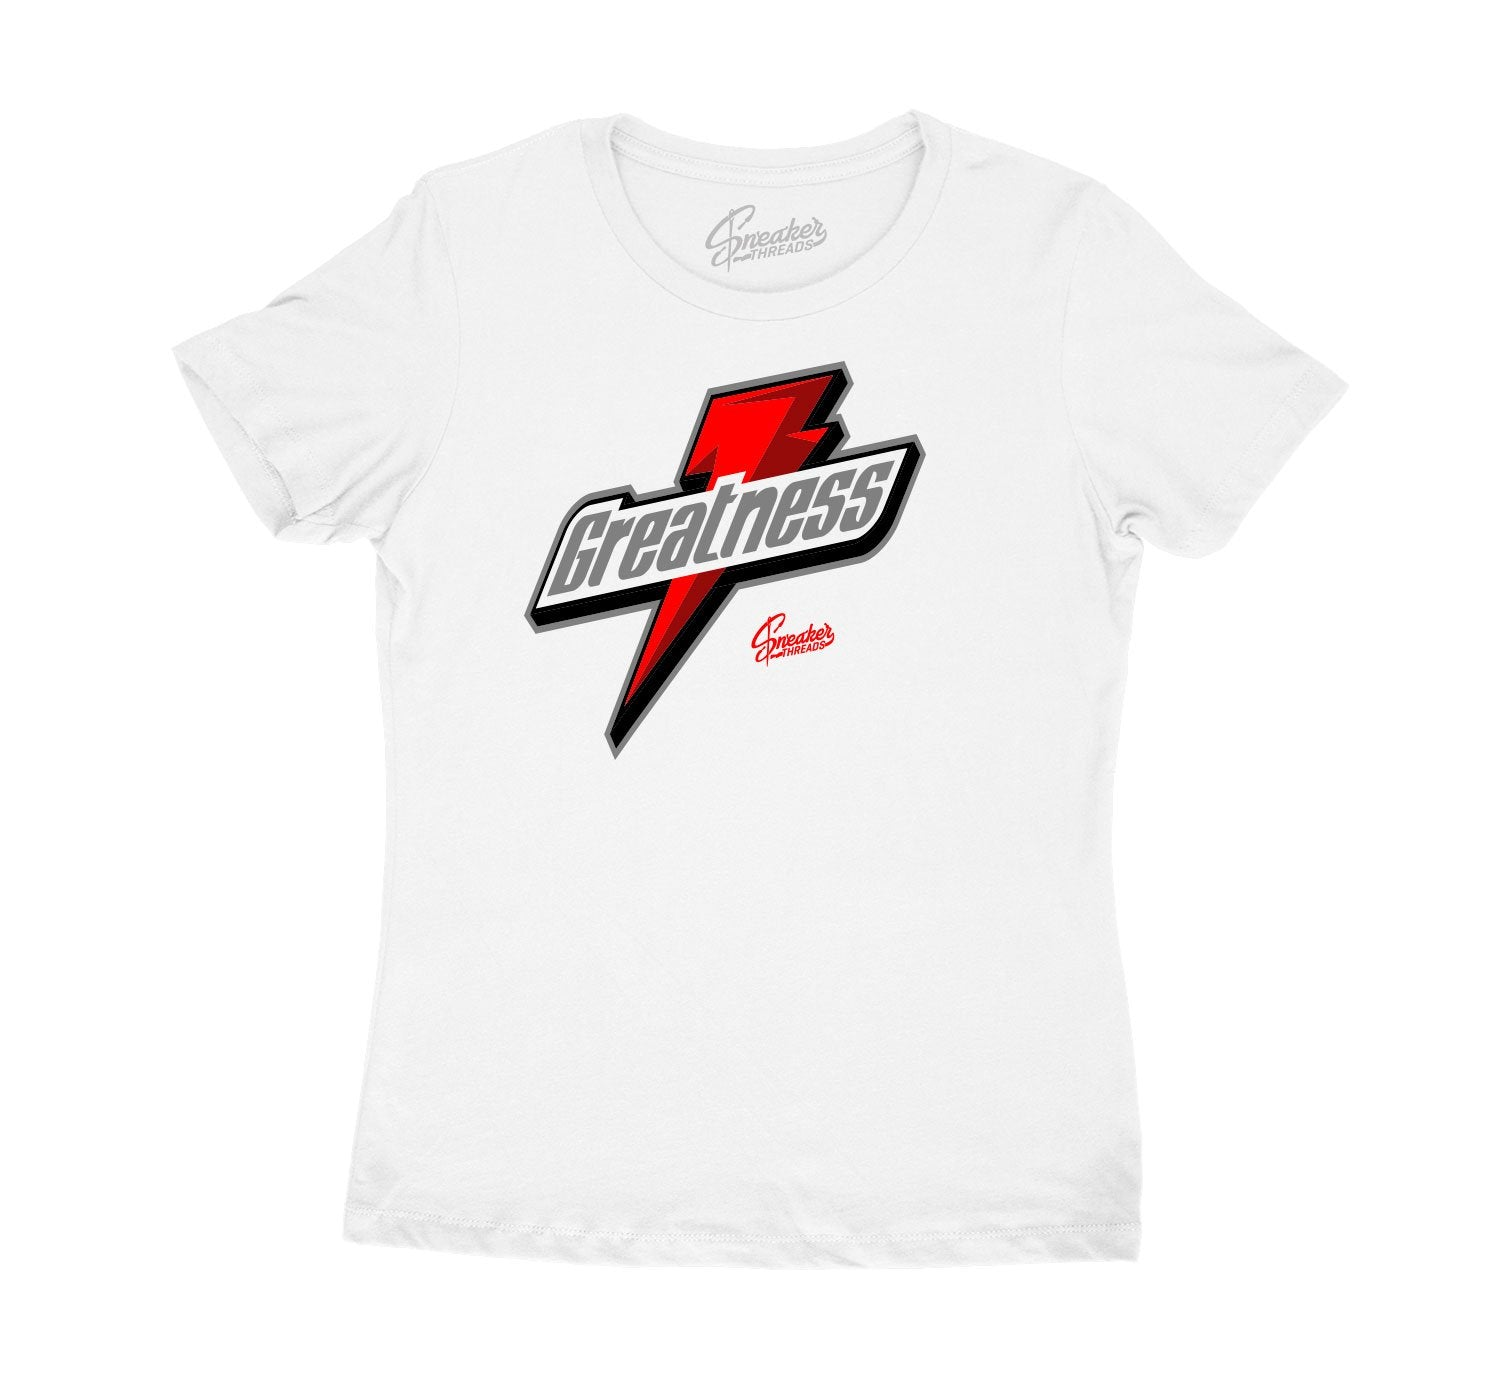 t-shirt for women designed to match the Jordan 12 dark grey sneakers